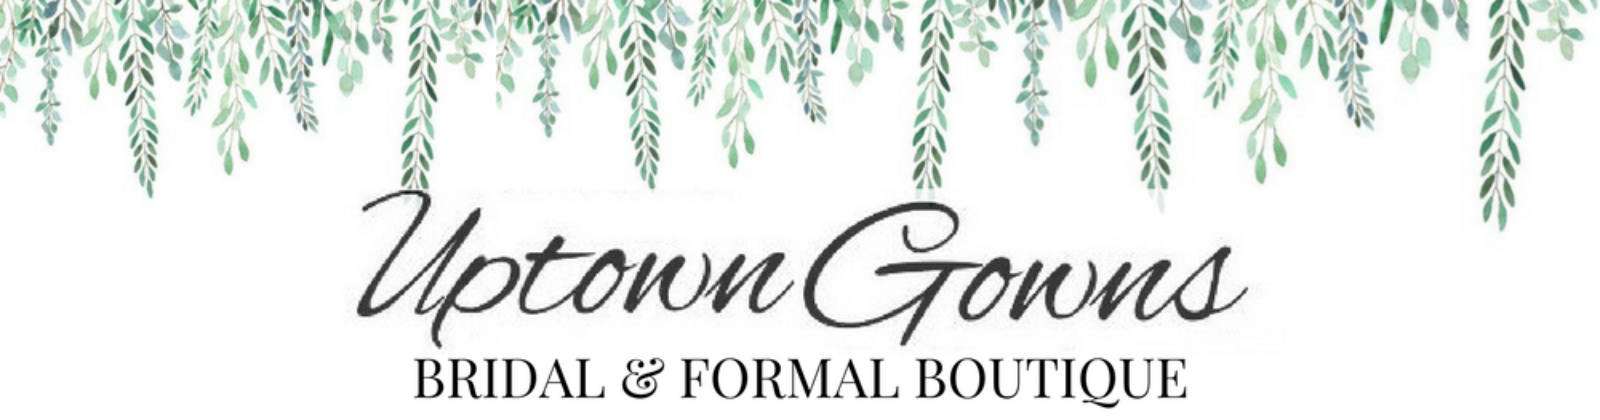 cropped-Bridal-Formal-Boutique.png